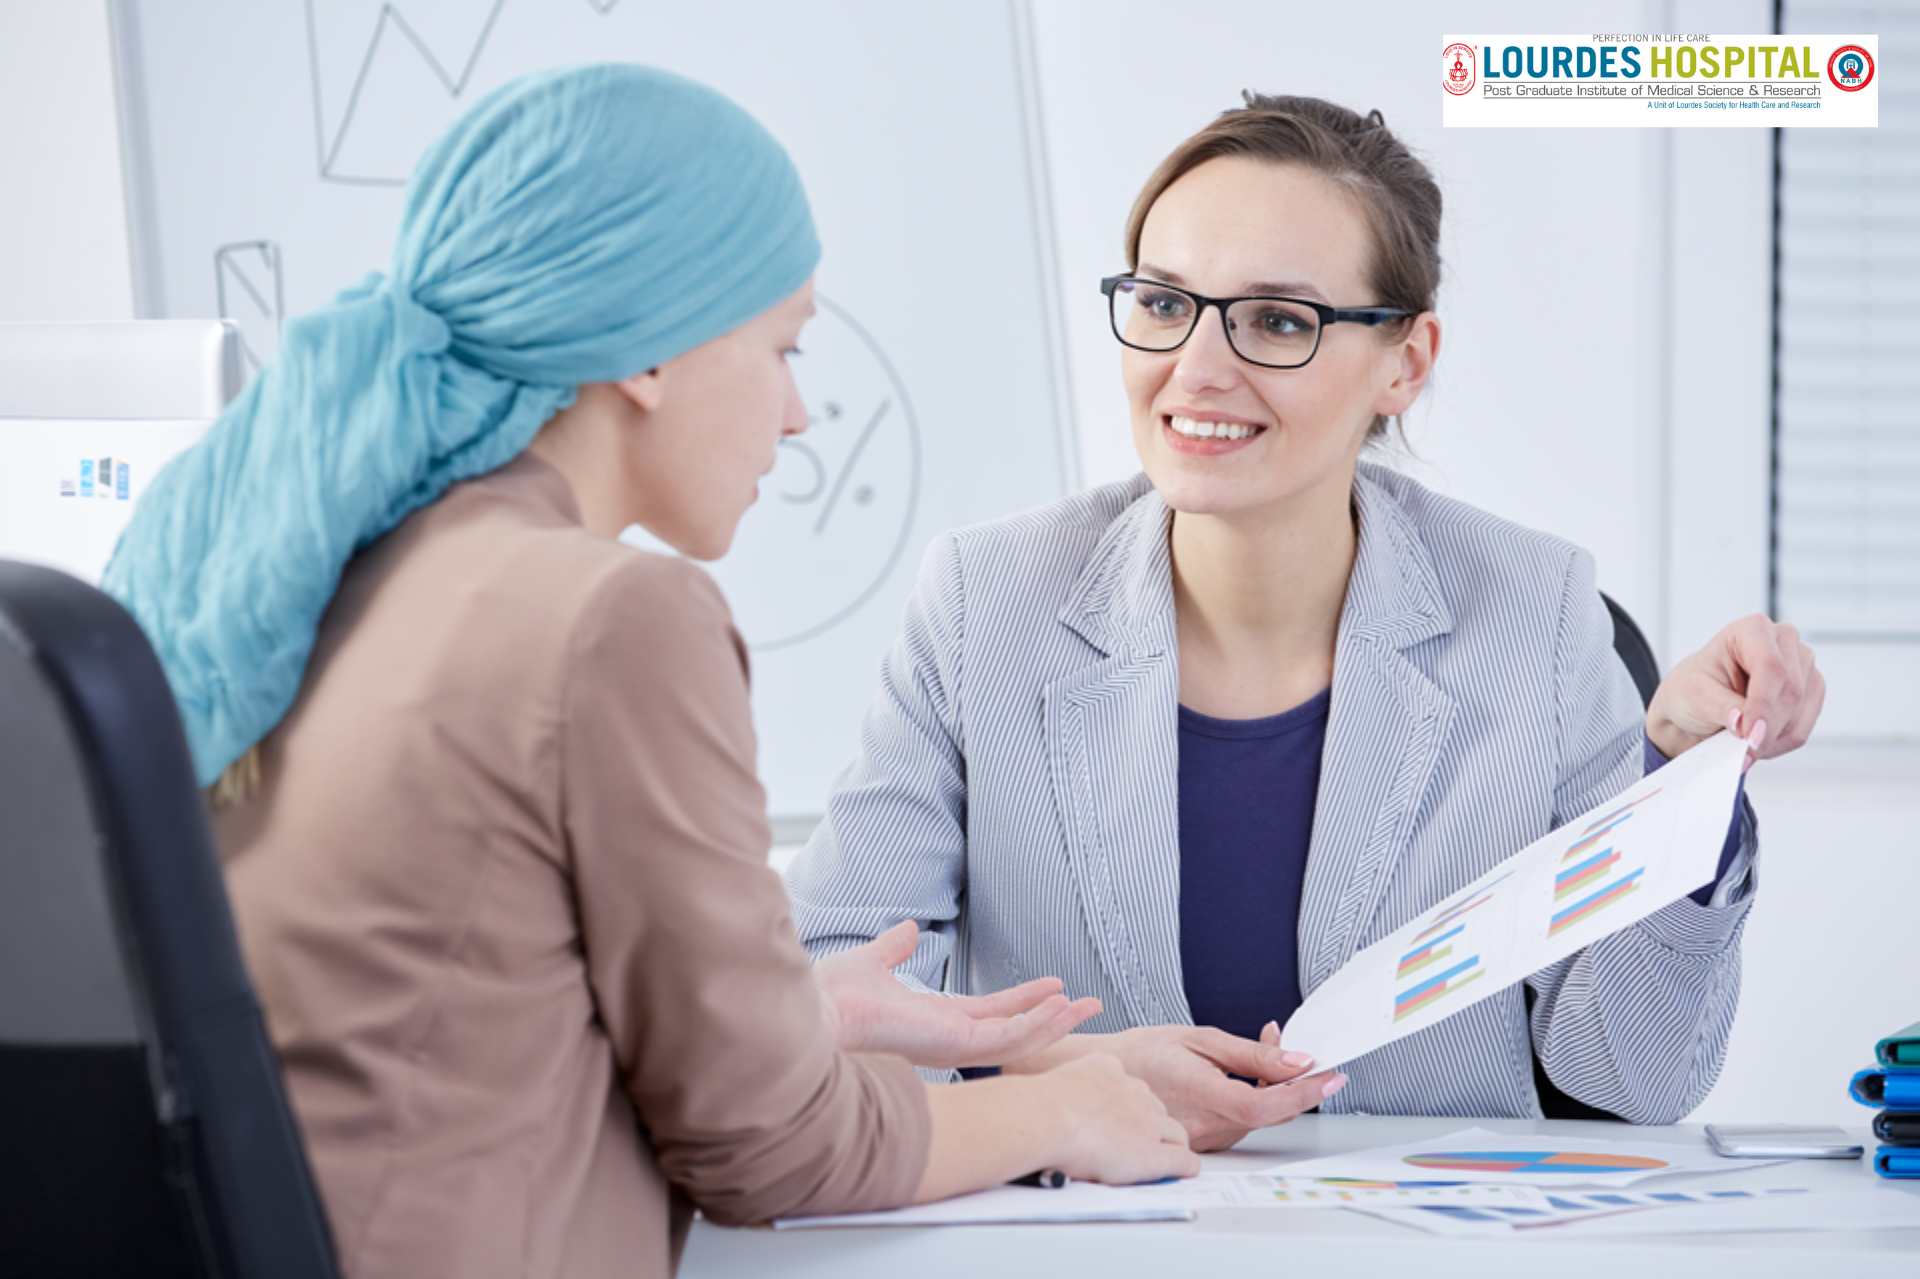 What are the things you look for in an Oncologist?